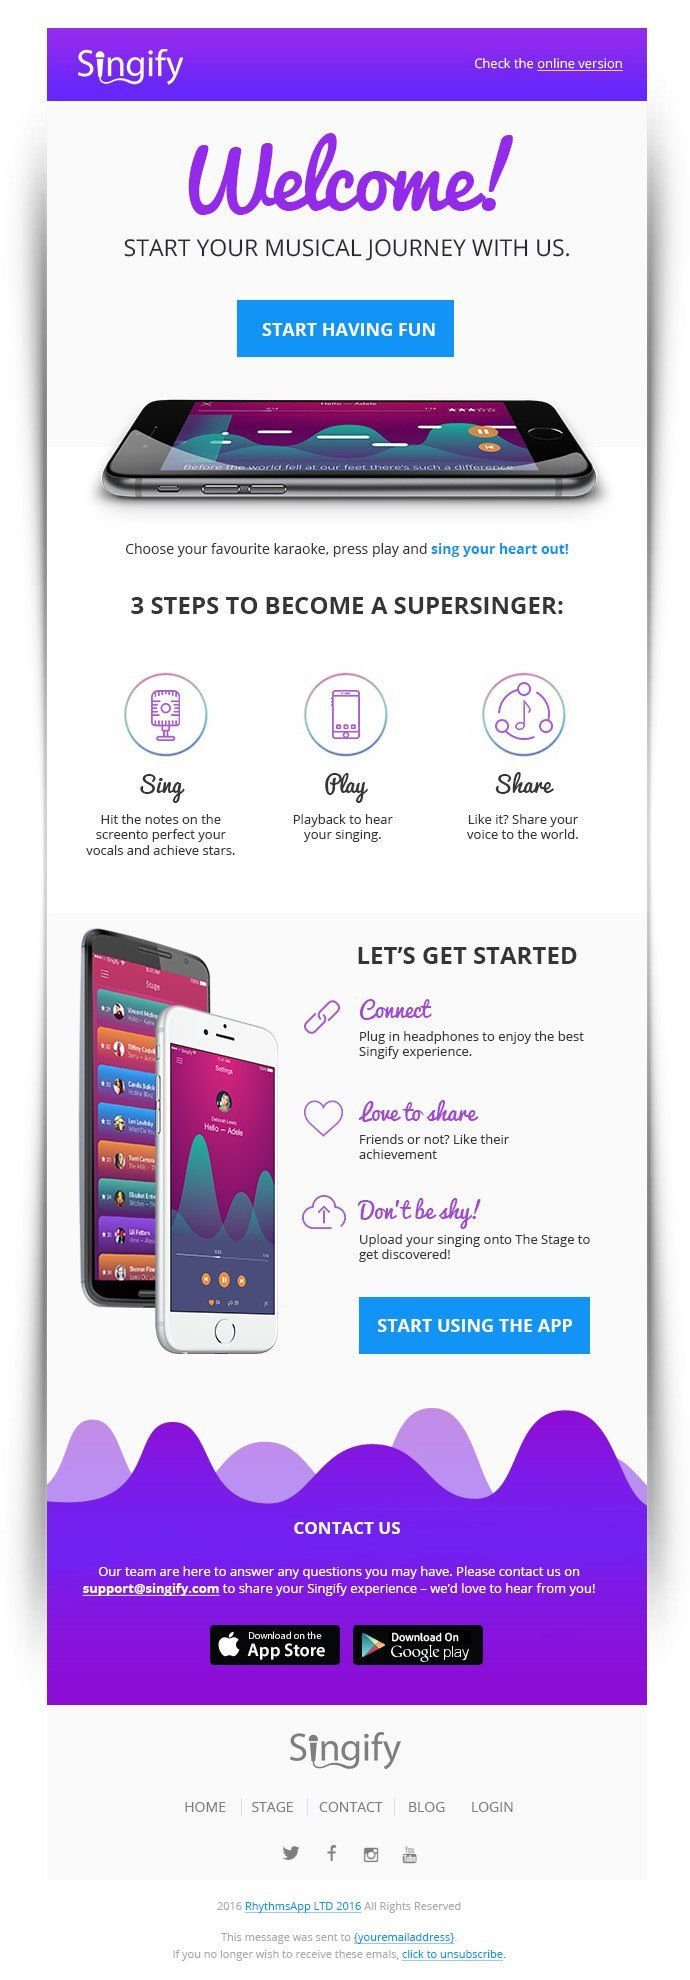 4 email design tips that just plain work. Email template design by stefanficu